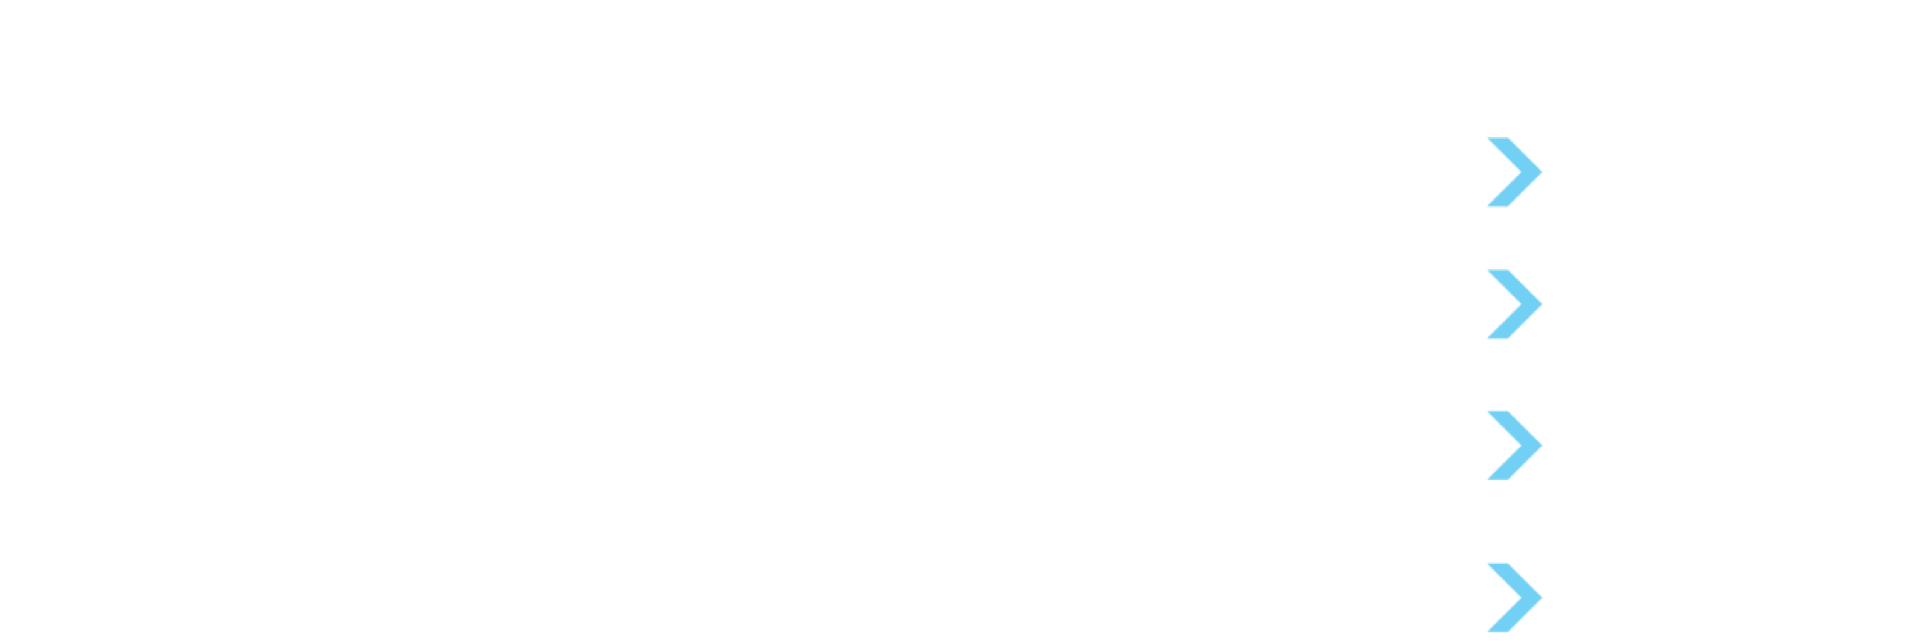 How to Determine if You are Self Employed